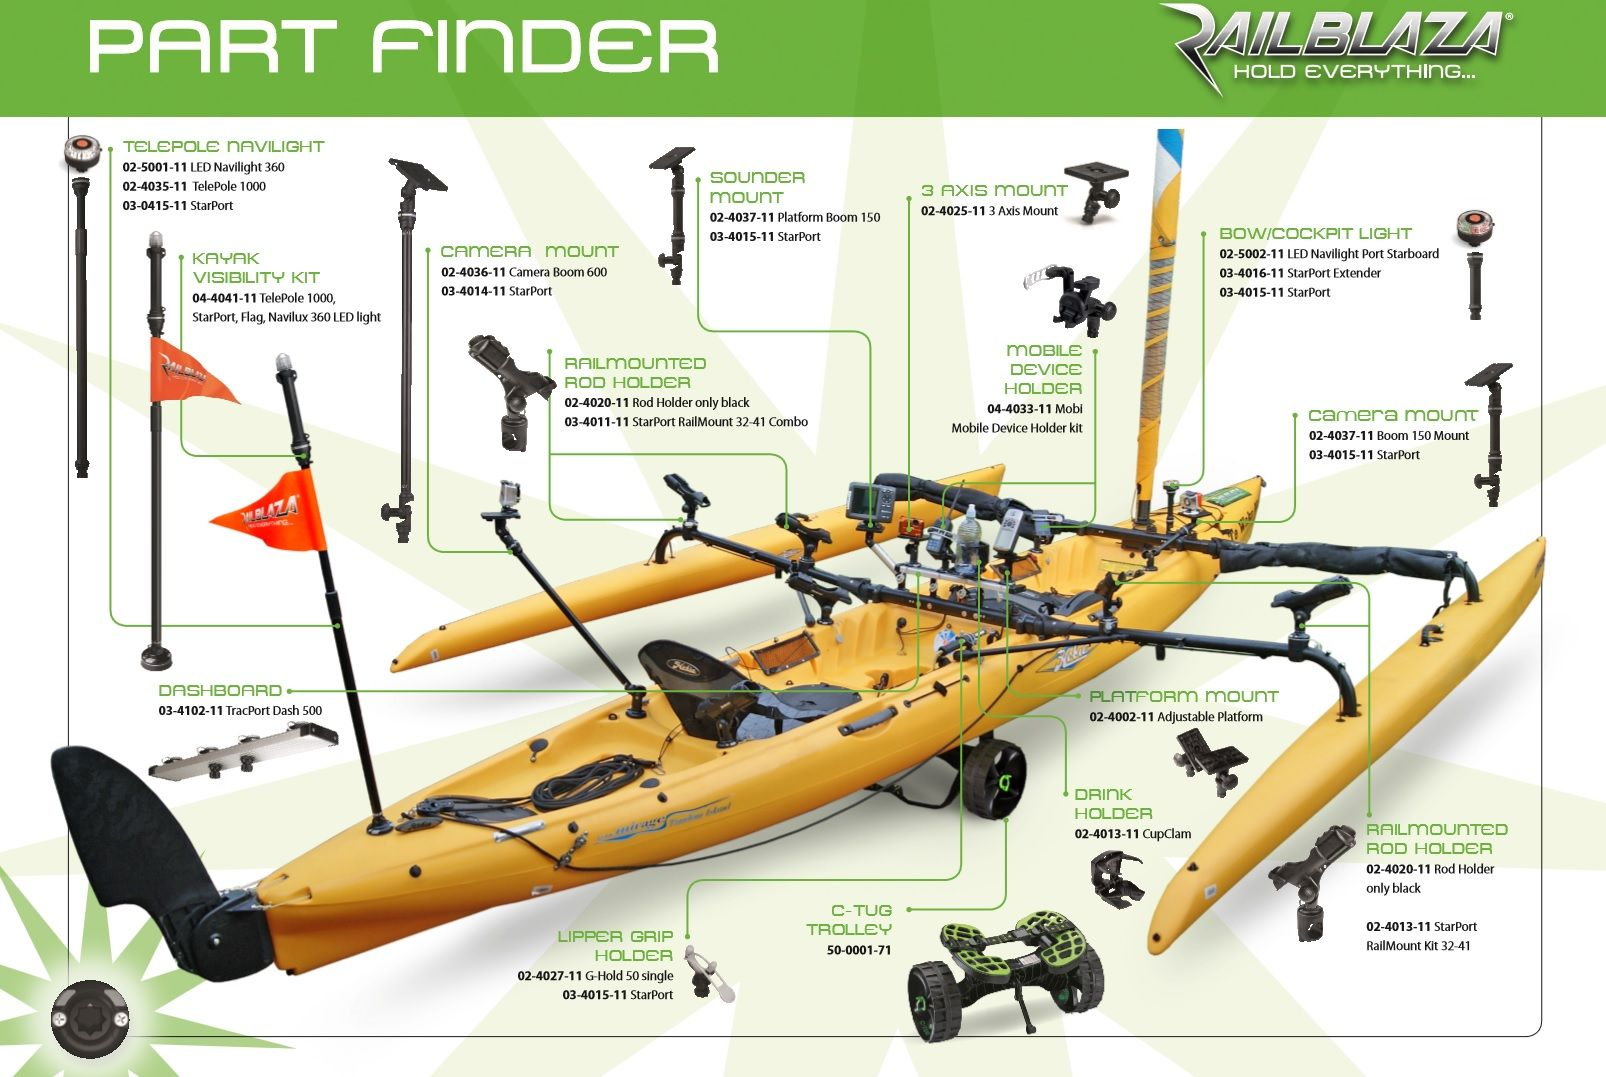 Accessories & mounts for any kayak, canoe or SUP  RAILBLAZA